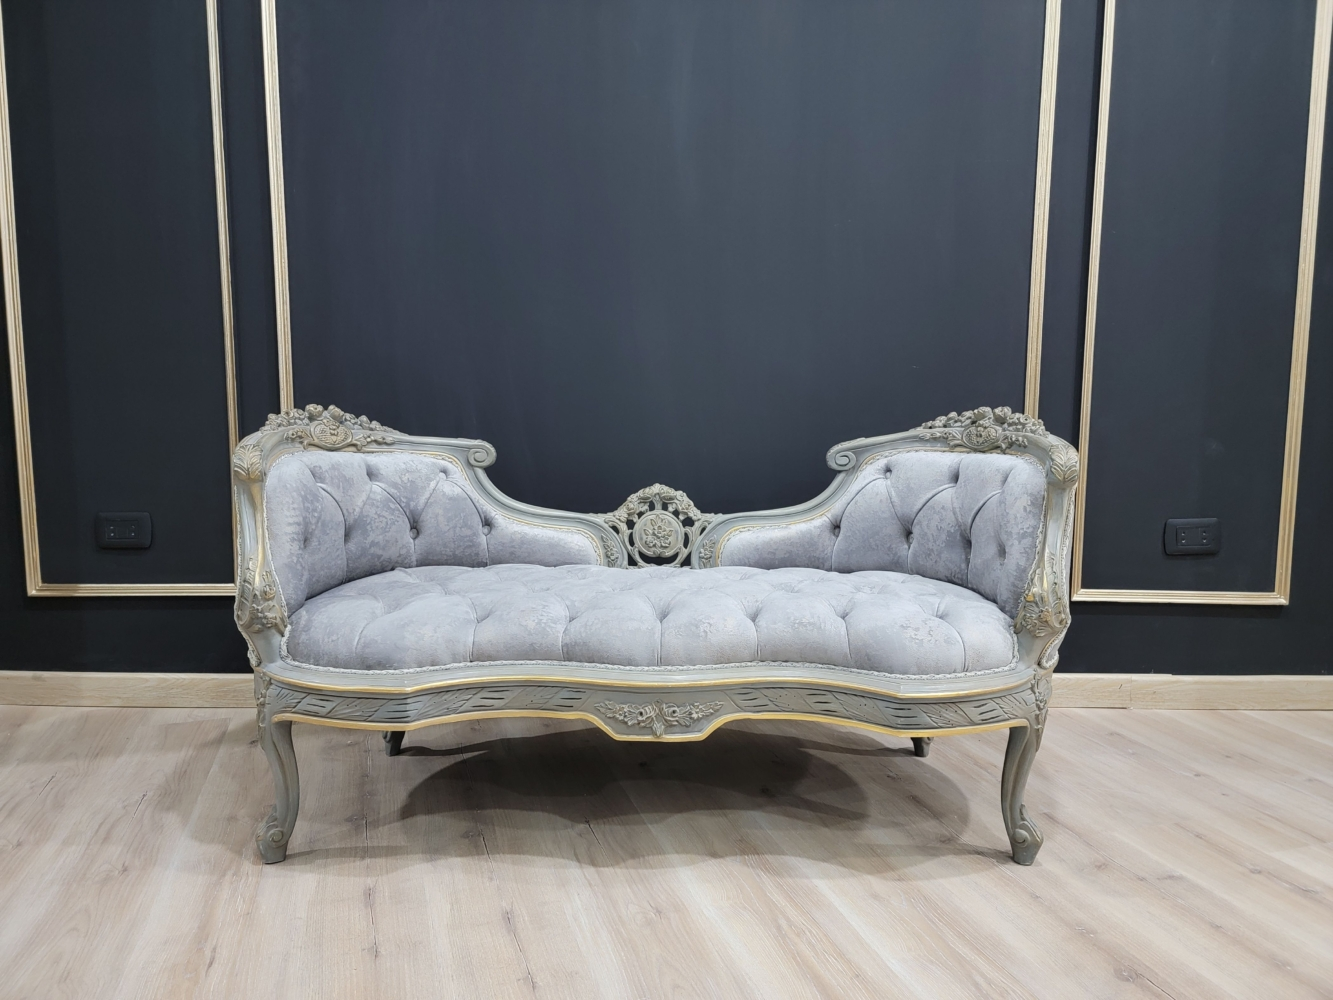 French Style Settee/ Gold Leafed with Silver Shades / Tufted Silver Velvet/ Hand Carved Wood Frame